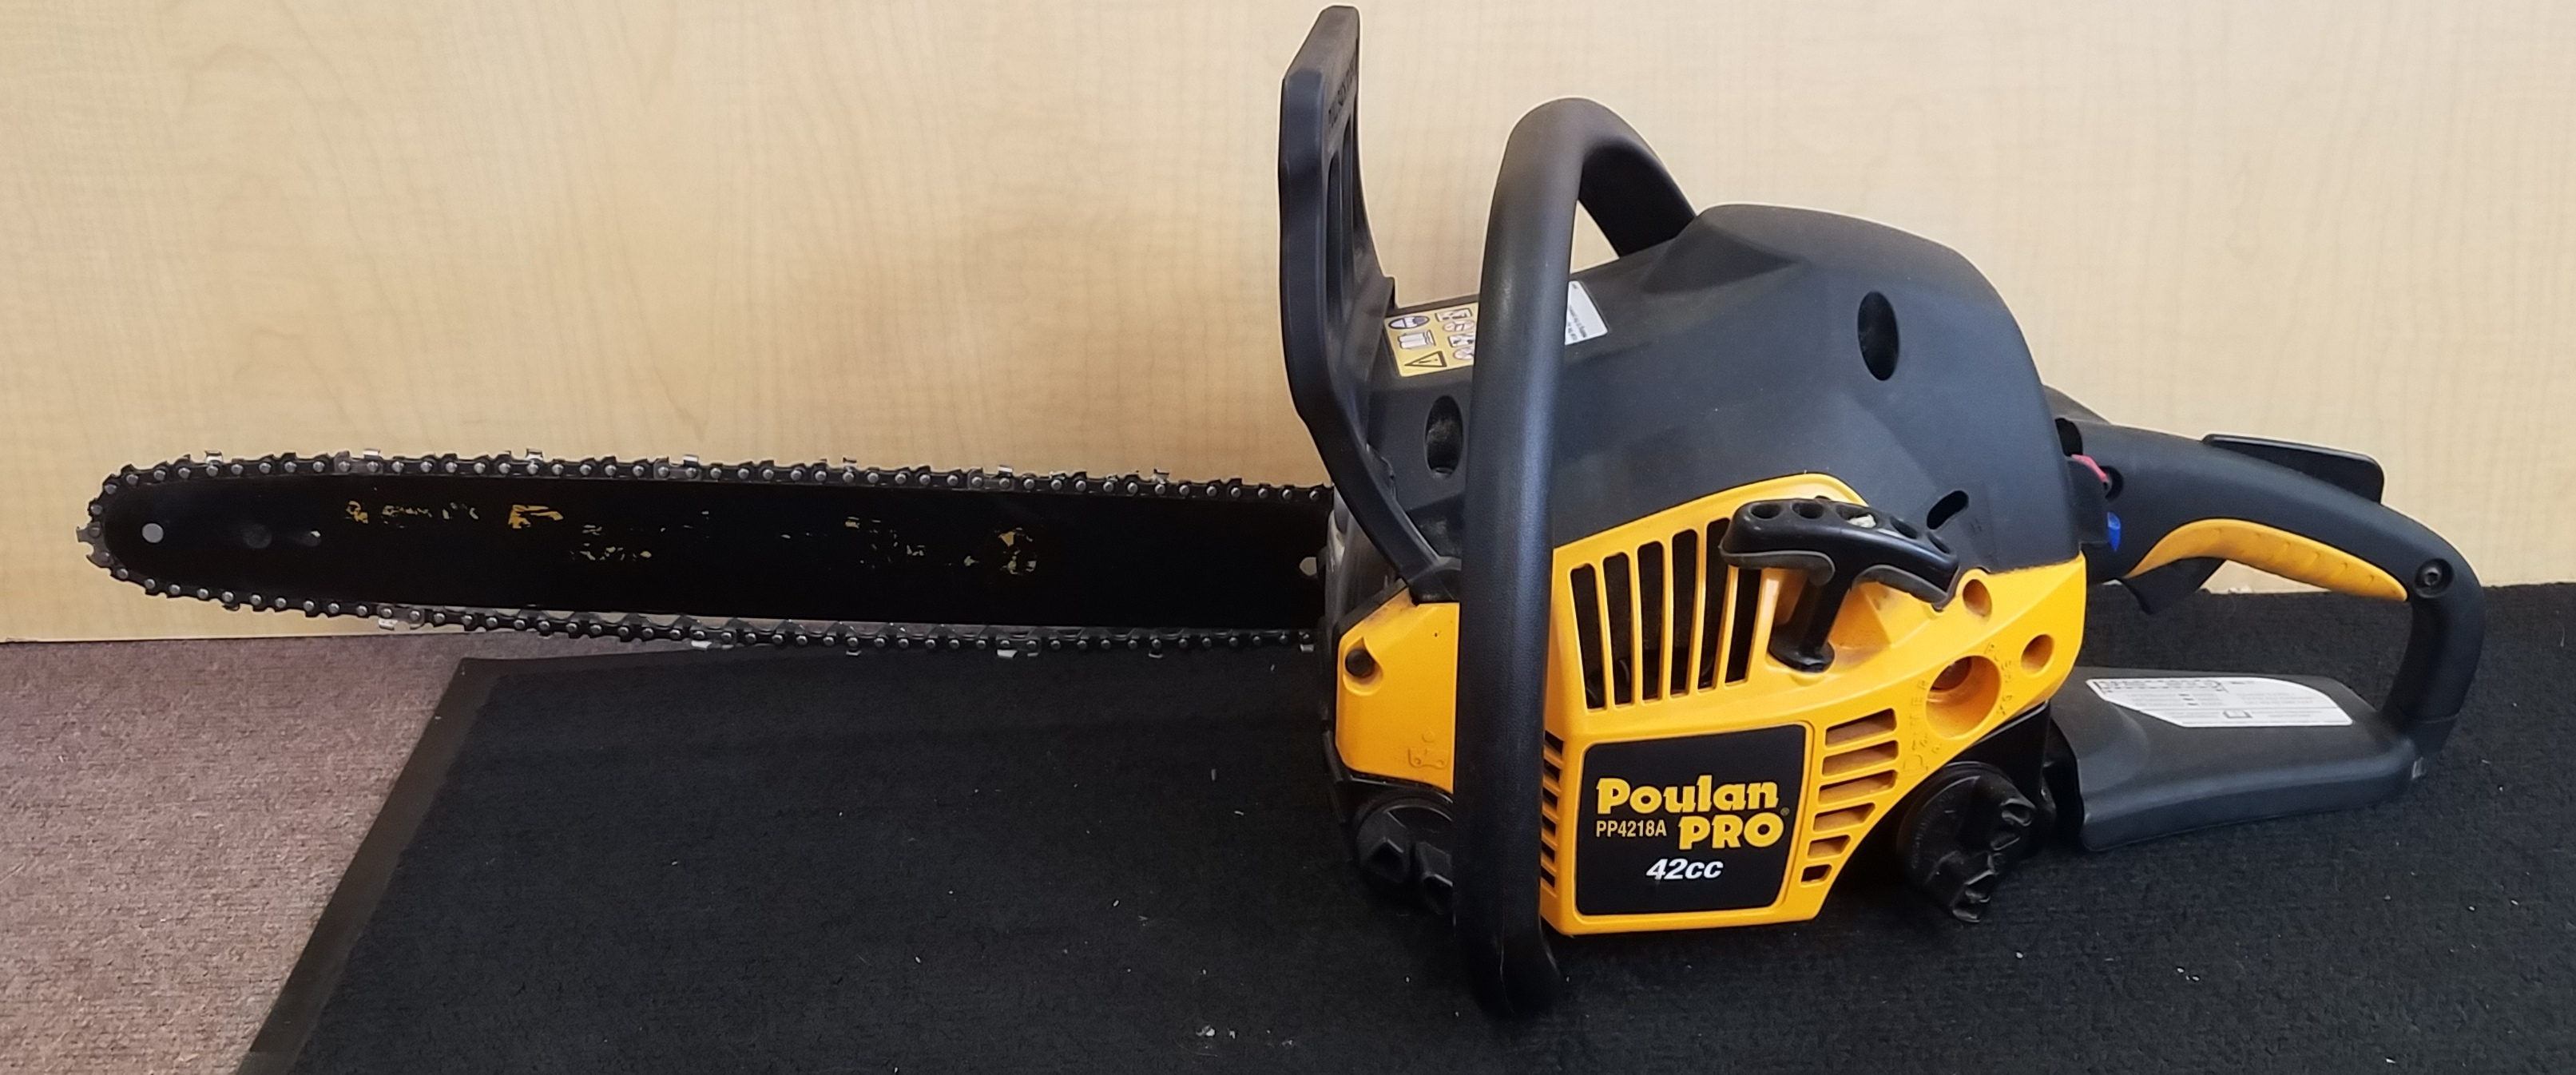 POULAN  PP4218A  CHAIN SAW TOOLS